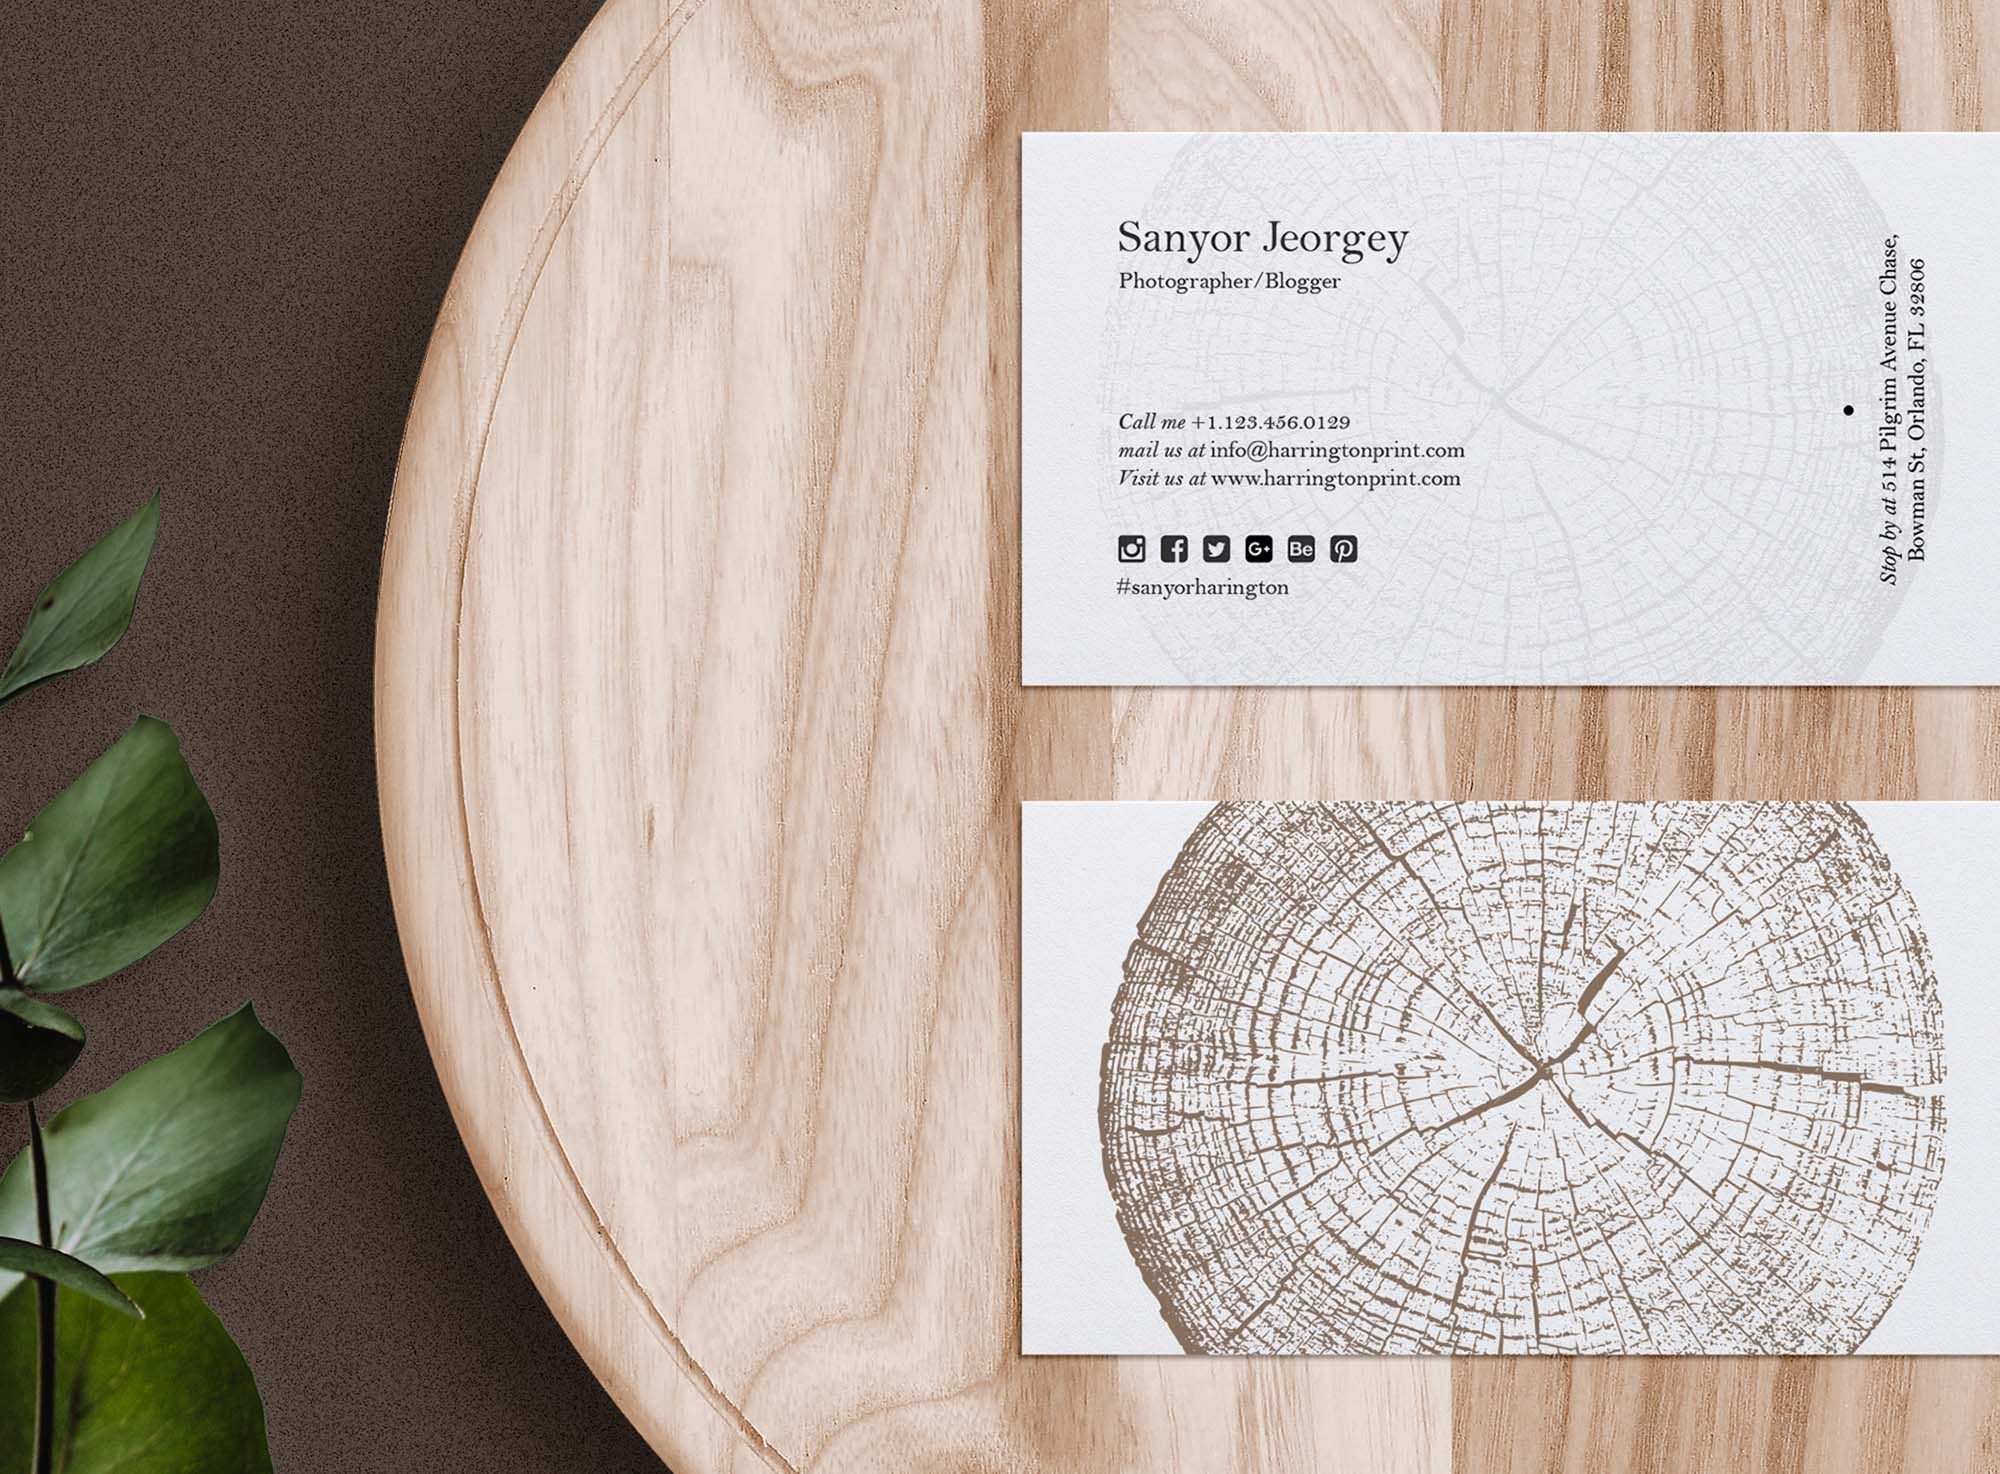 Business Card Mockup on Wooden Tray 2